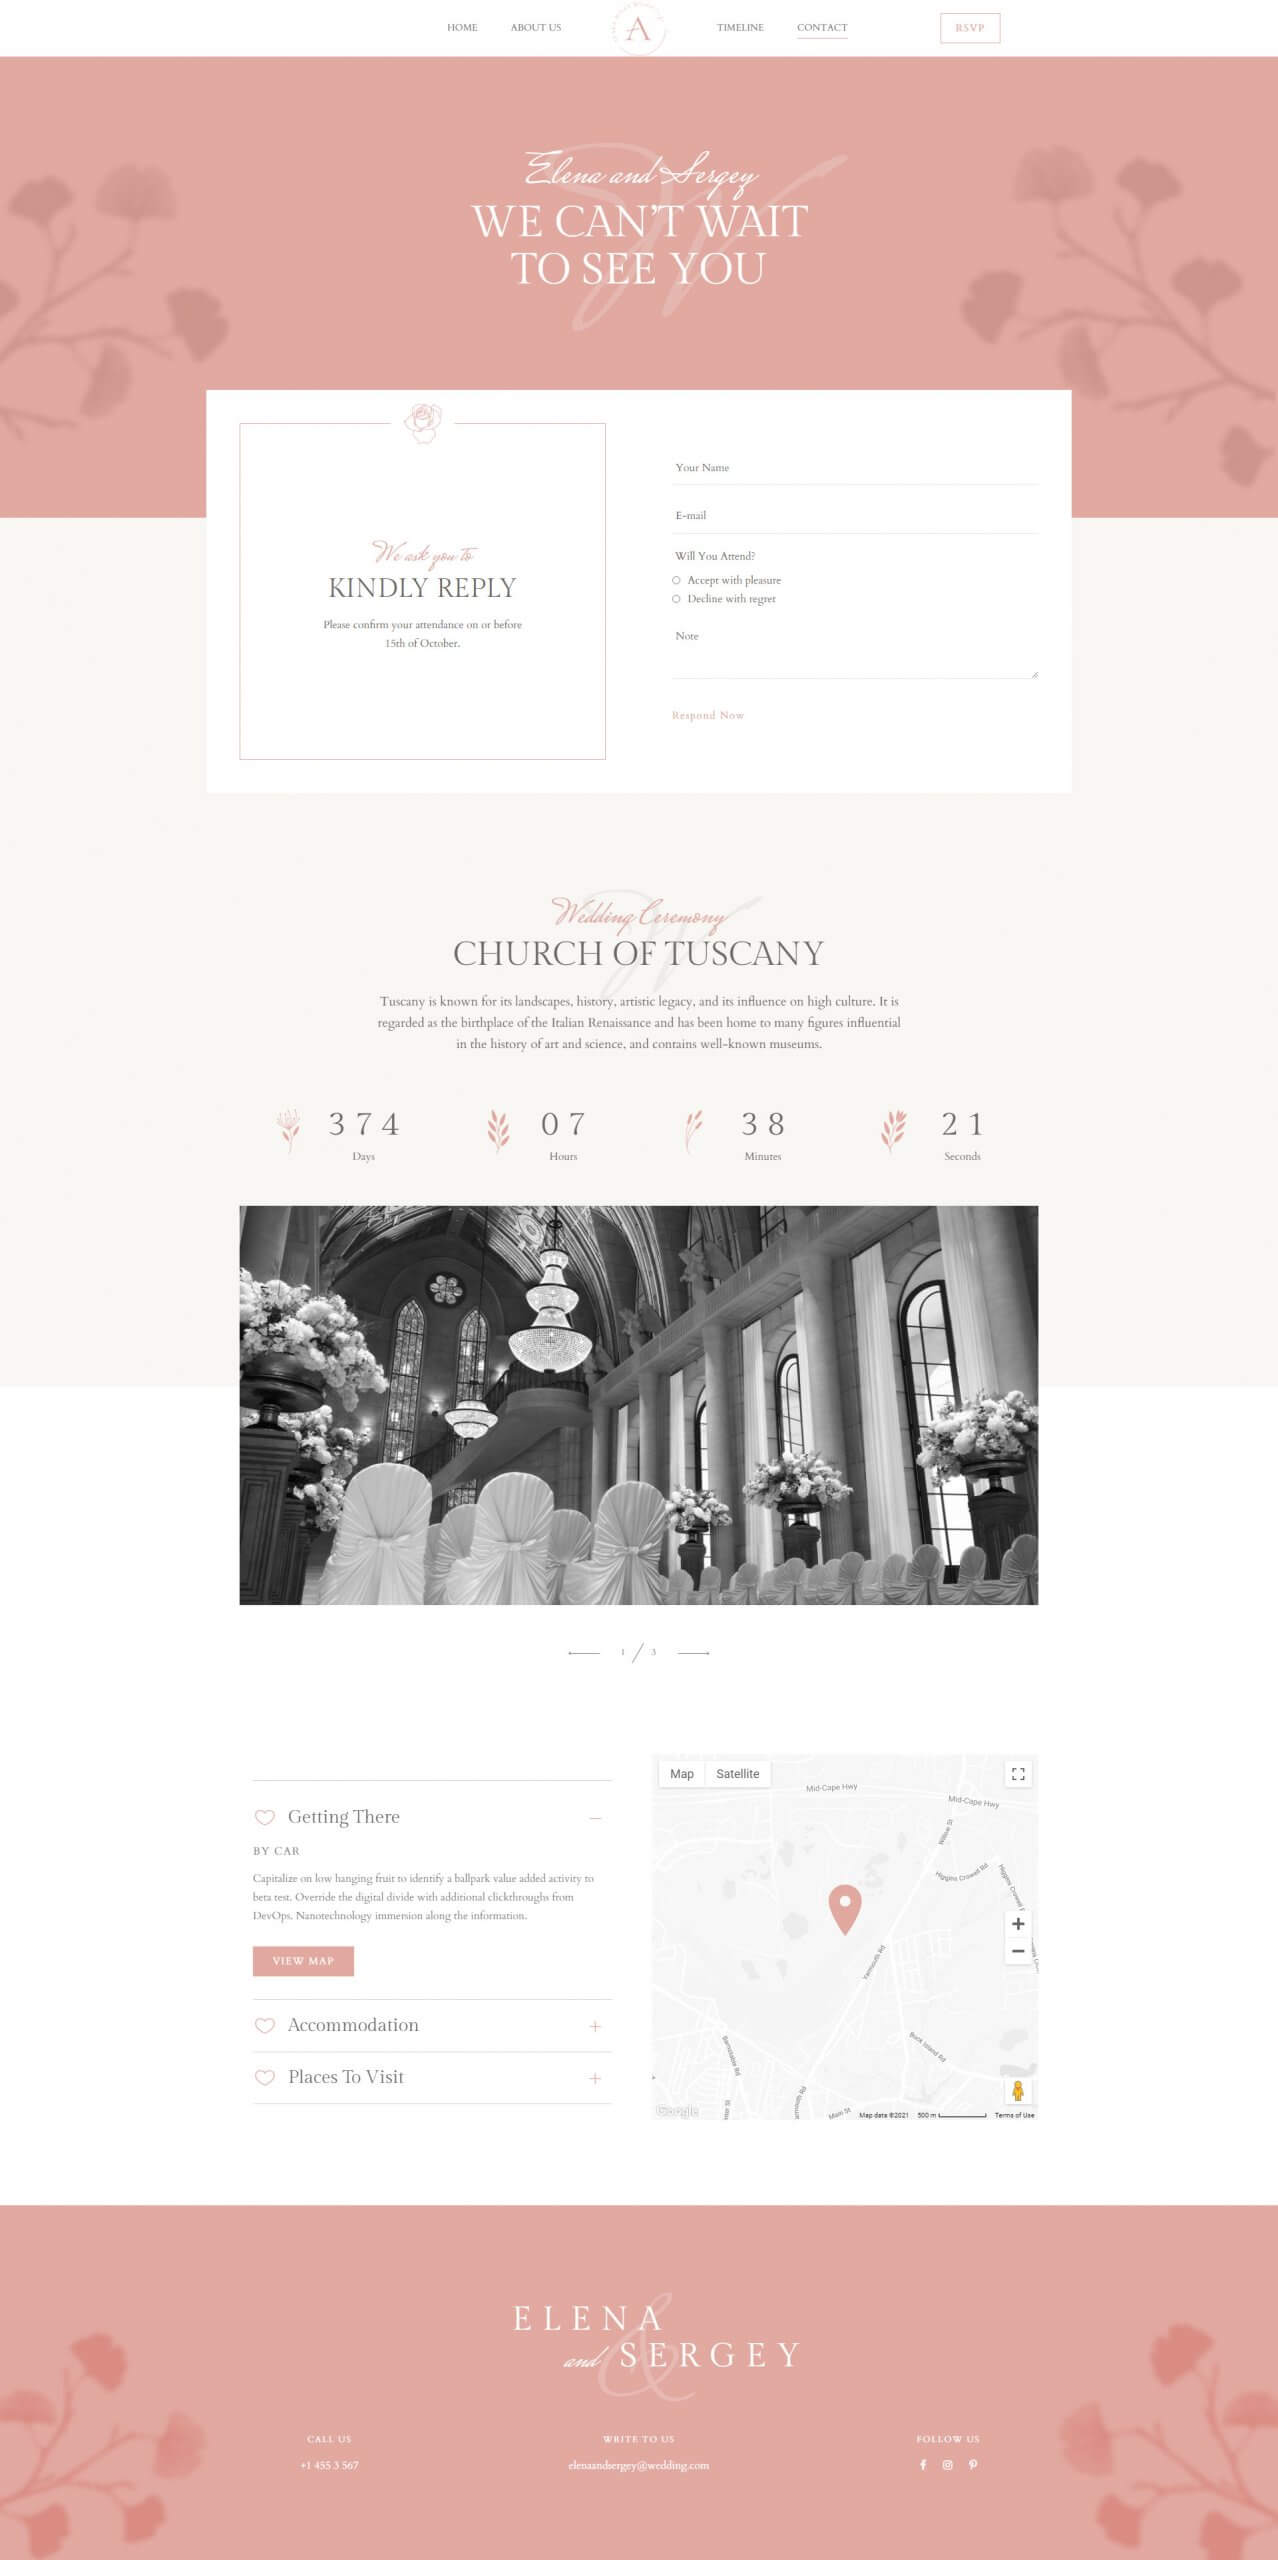 http://avala.bold-themes.com/wp-content/uploads/2021/02/Winter-Contact-Location-Couples-scaled.jpg